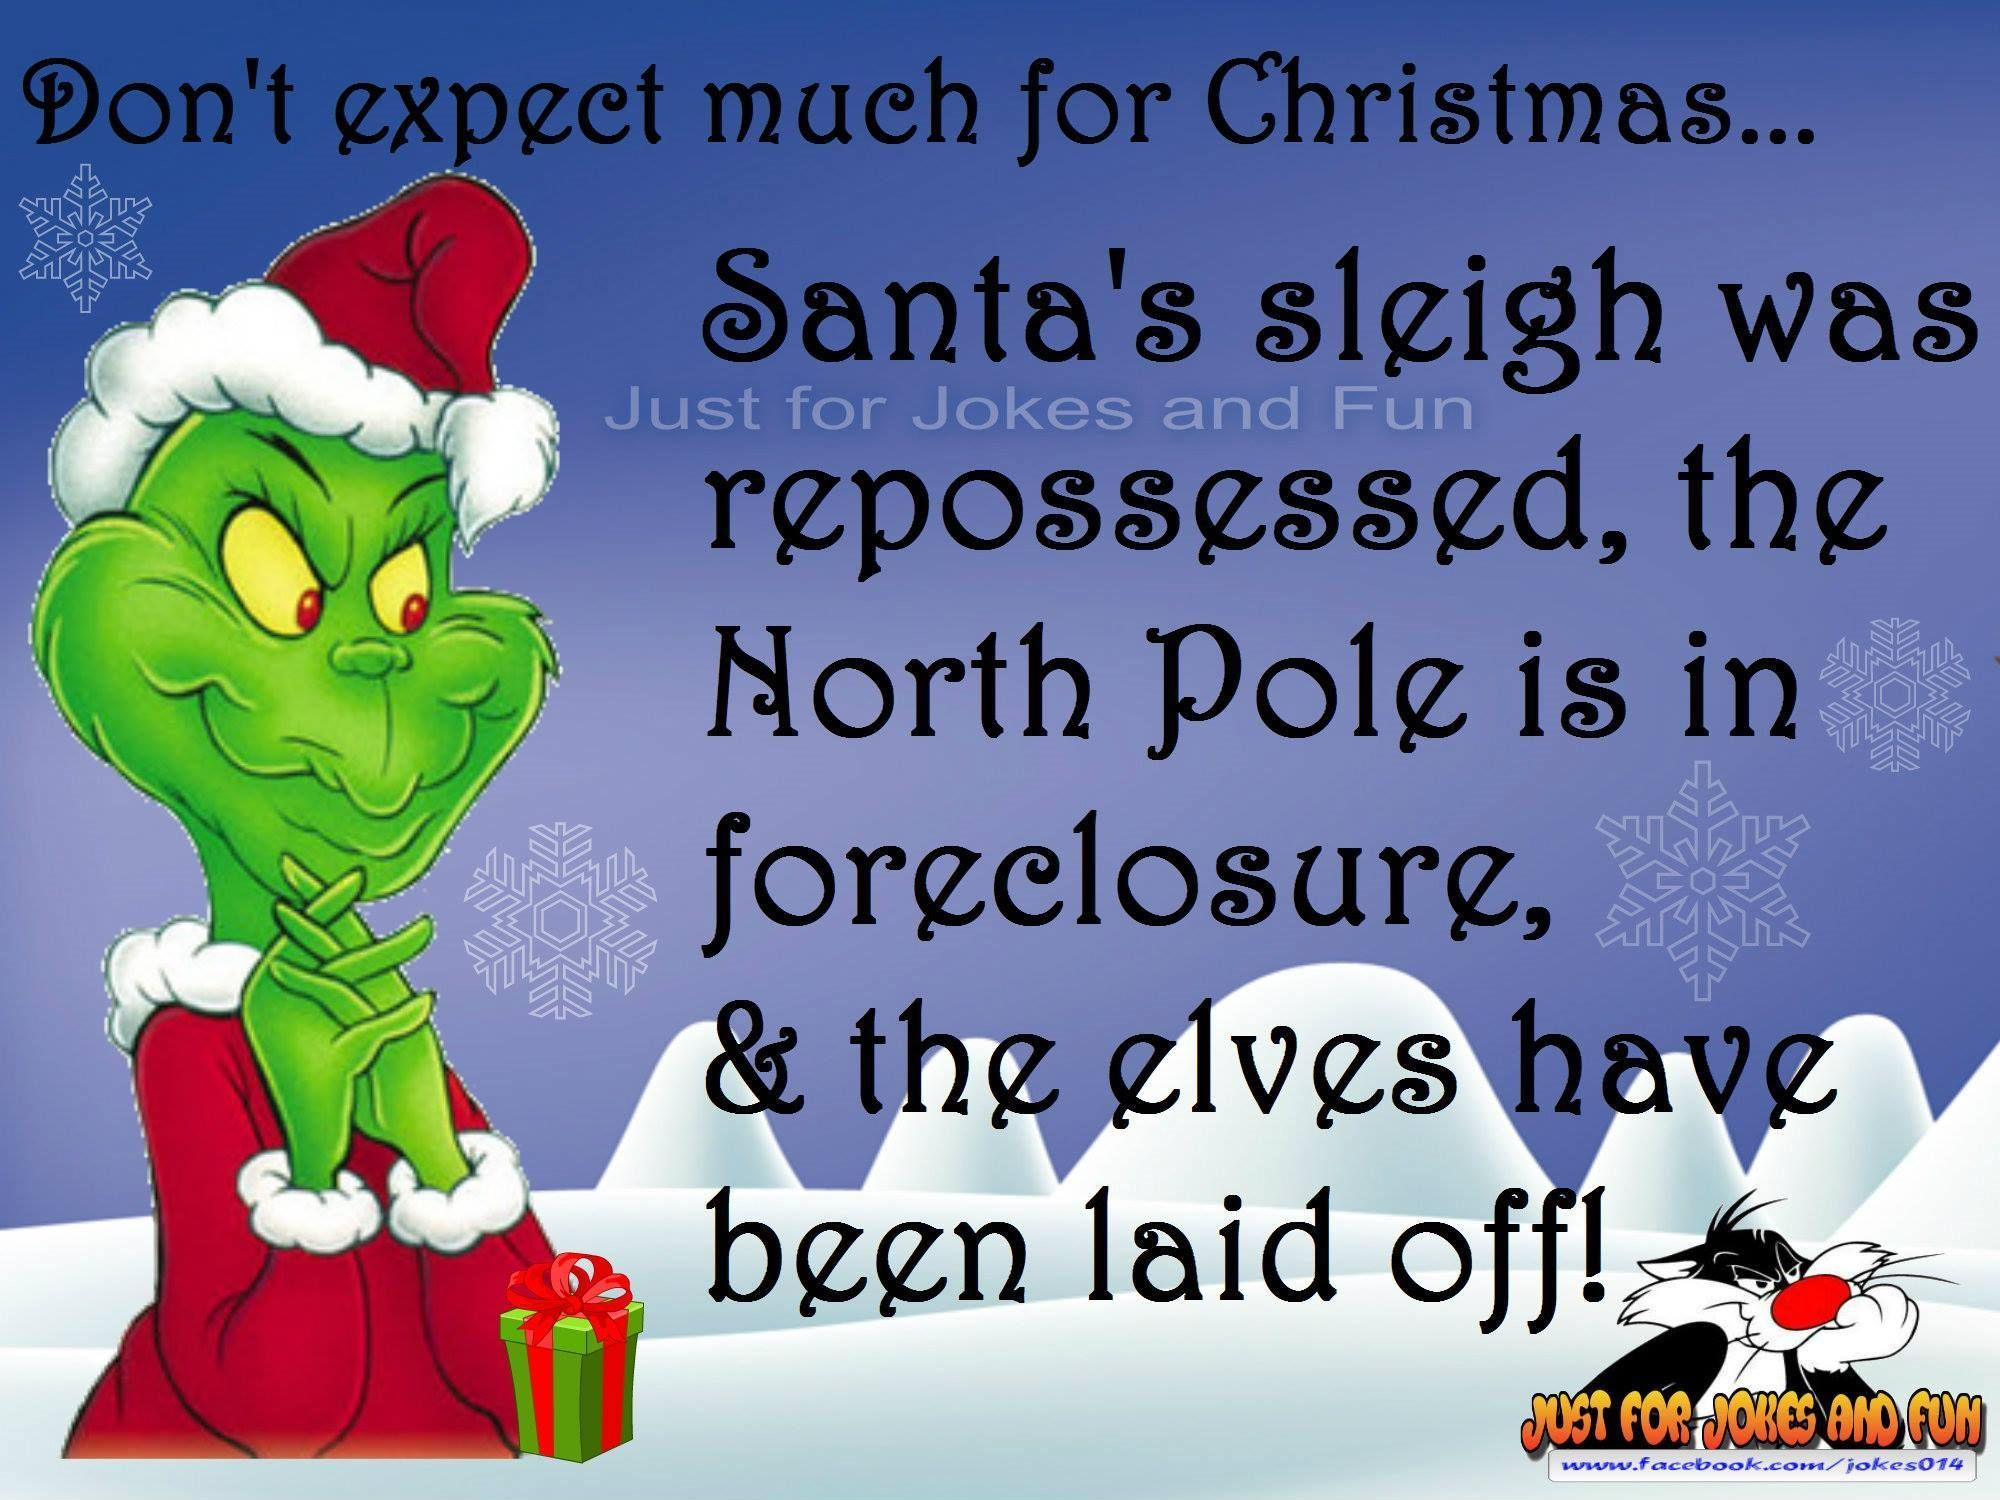 Funny Christmas Quote With The Grinch Christmas quotes